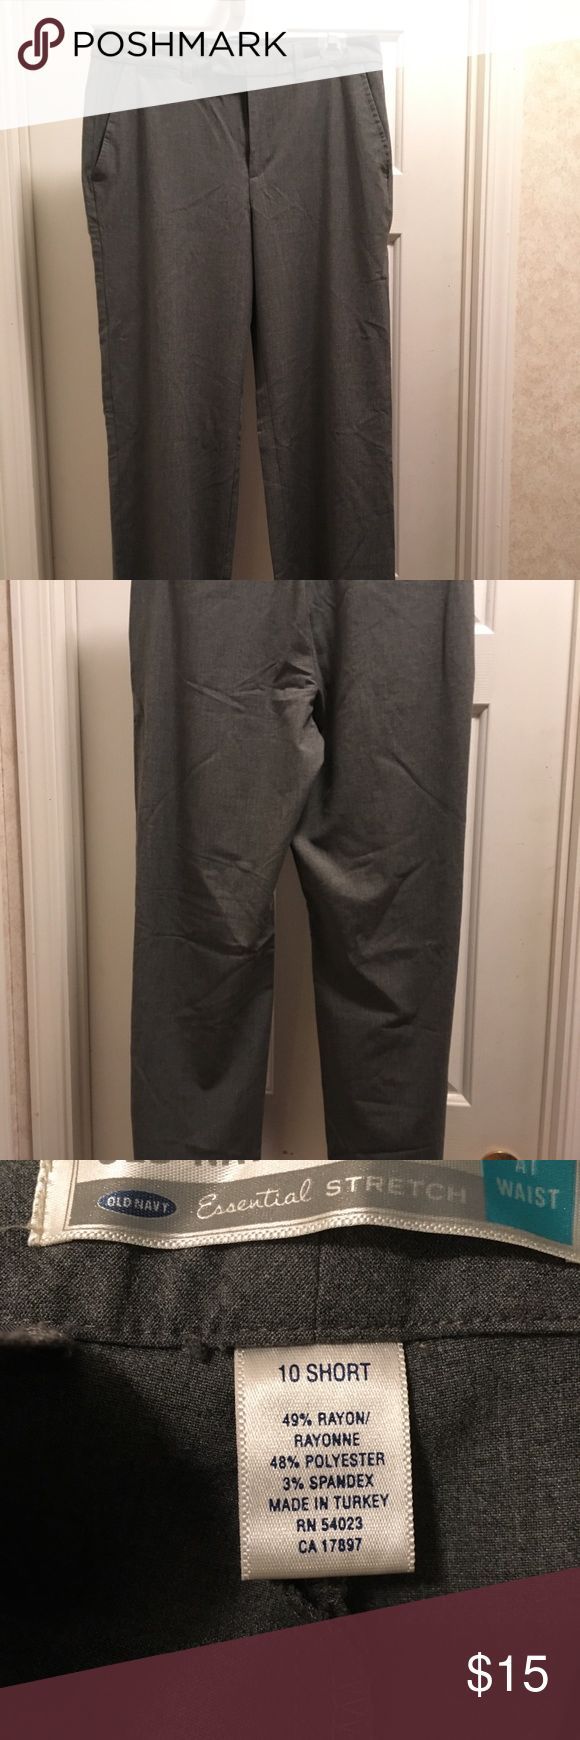 "Old Navy Dress Pants size 10 Short Old Navy Dress Pants size 10 Short. Essential stretch, ""at the waist"" fit, gray straight leg. In excellent condition. Old Navy Pants Trousers"